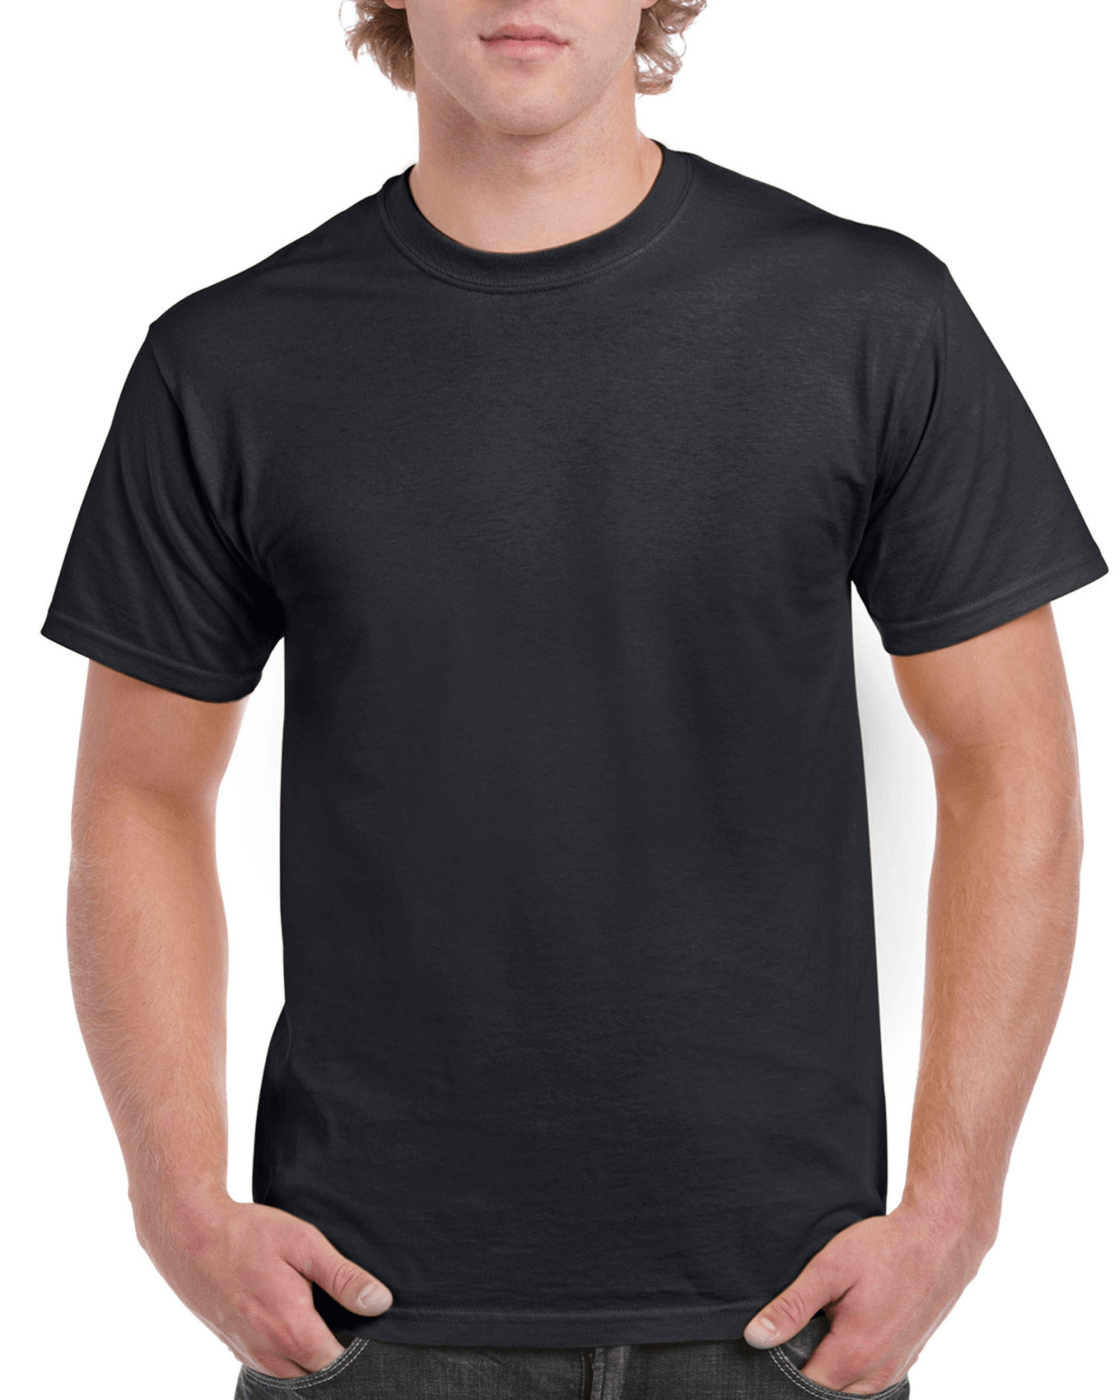 make your t-shirt wider